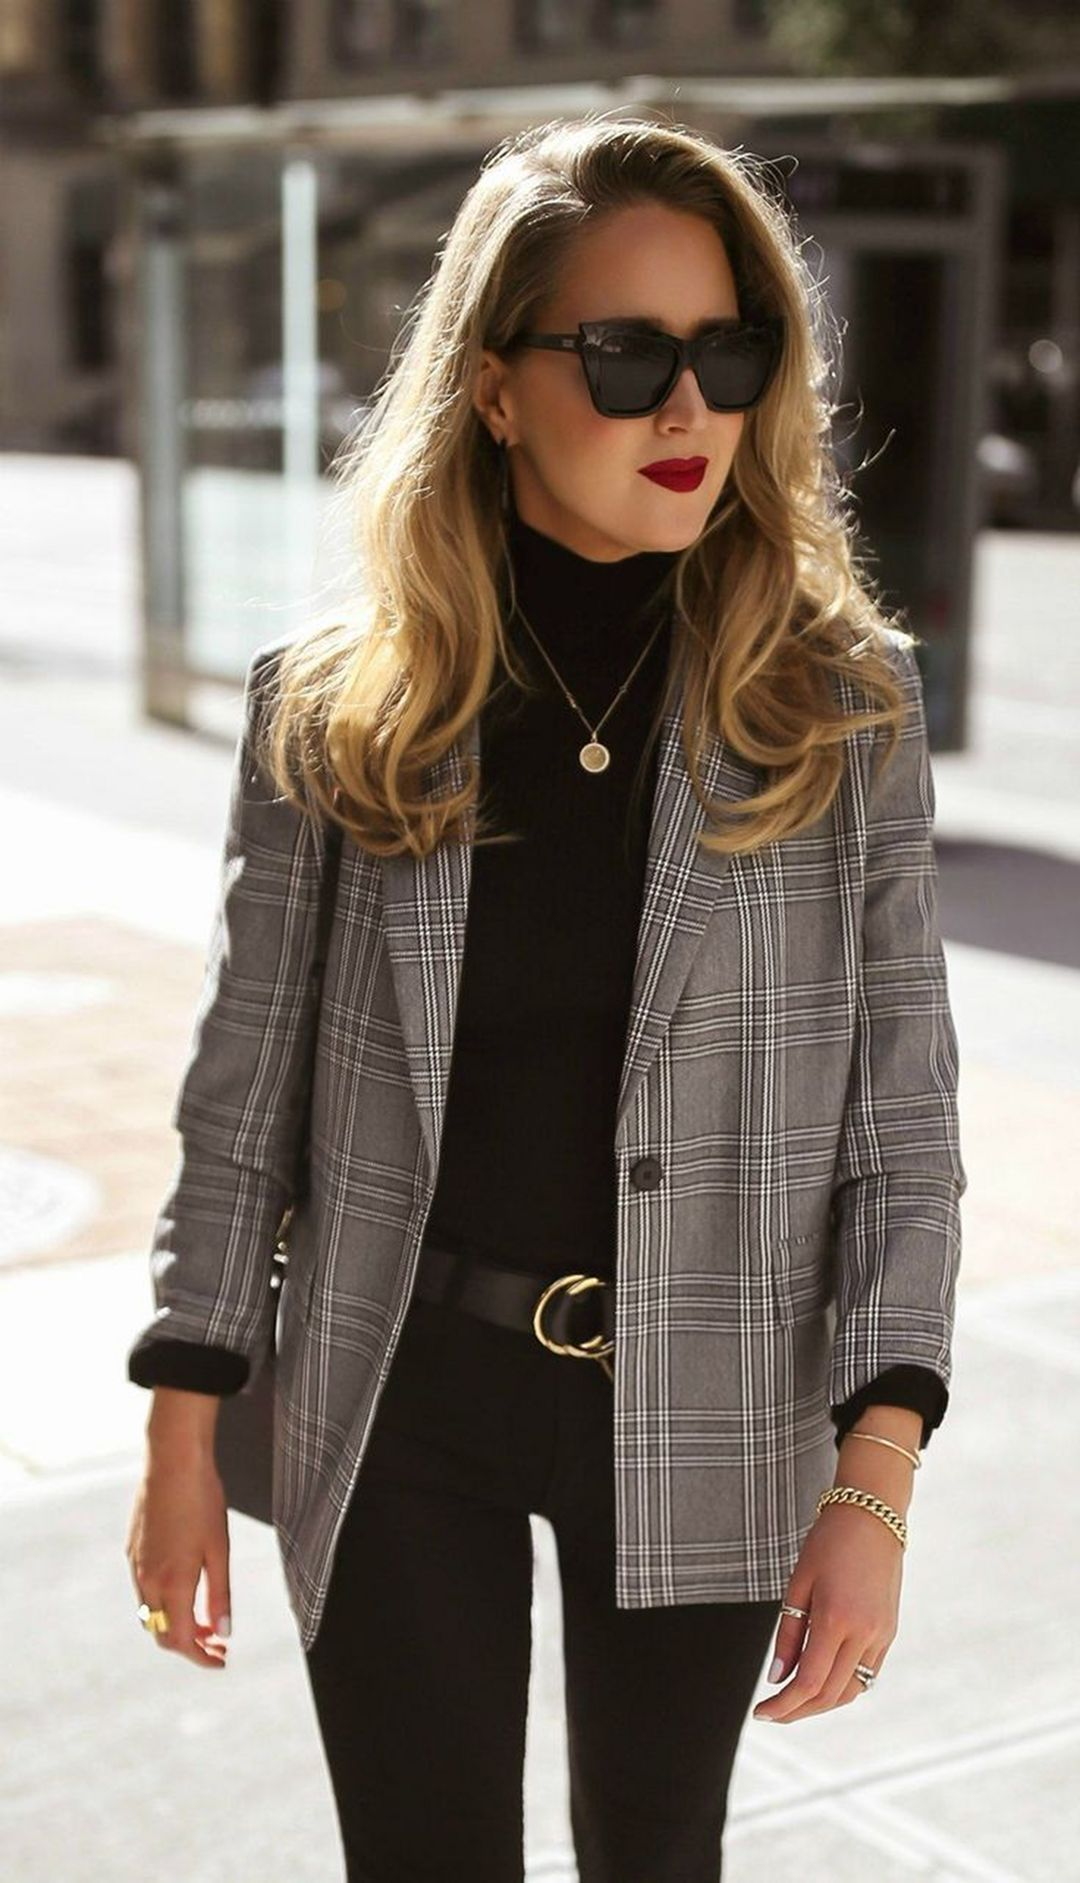 17 Modern Women's Blazer Outfits For You To Stay Maximum -   - #Blazer #Maximum #Modern #Outfits #Stay #Womens